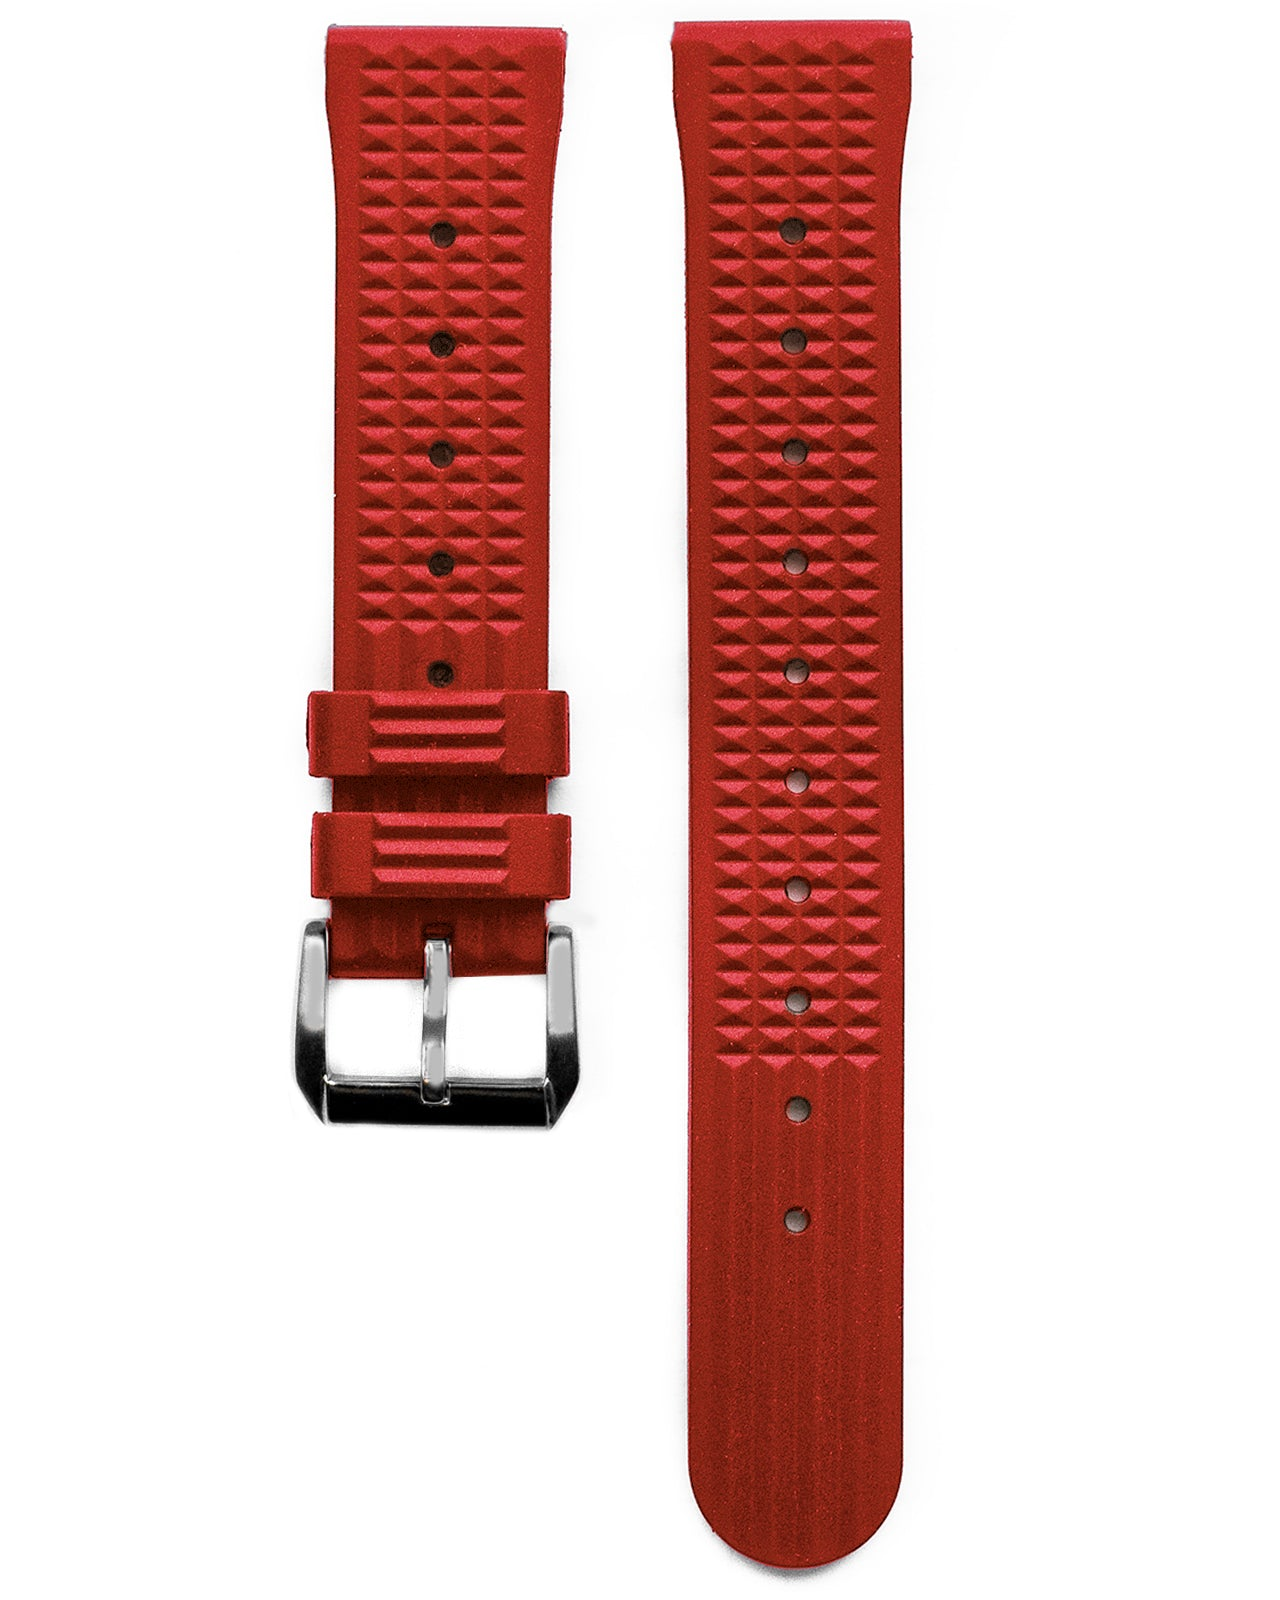 VULCANISED RUBBER - WAFFLE STRAP (RED, VINTAGE STYLE)